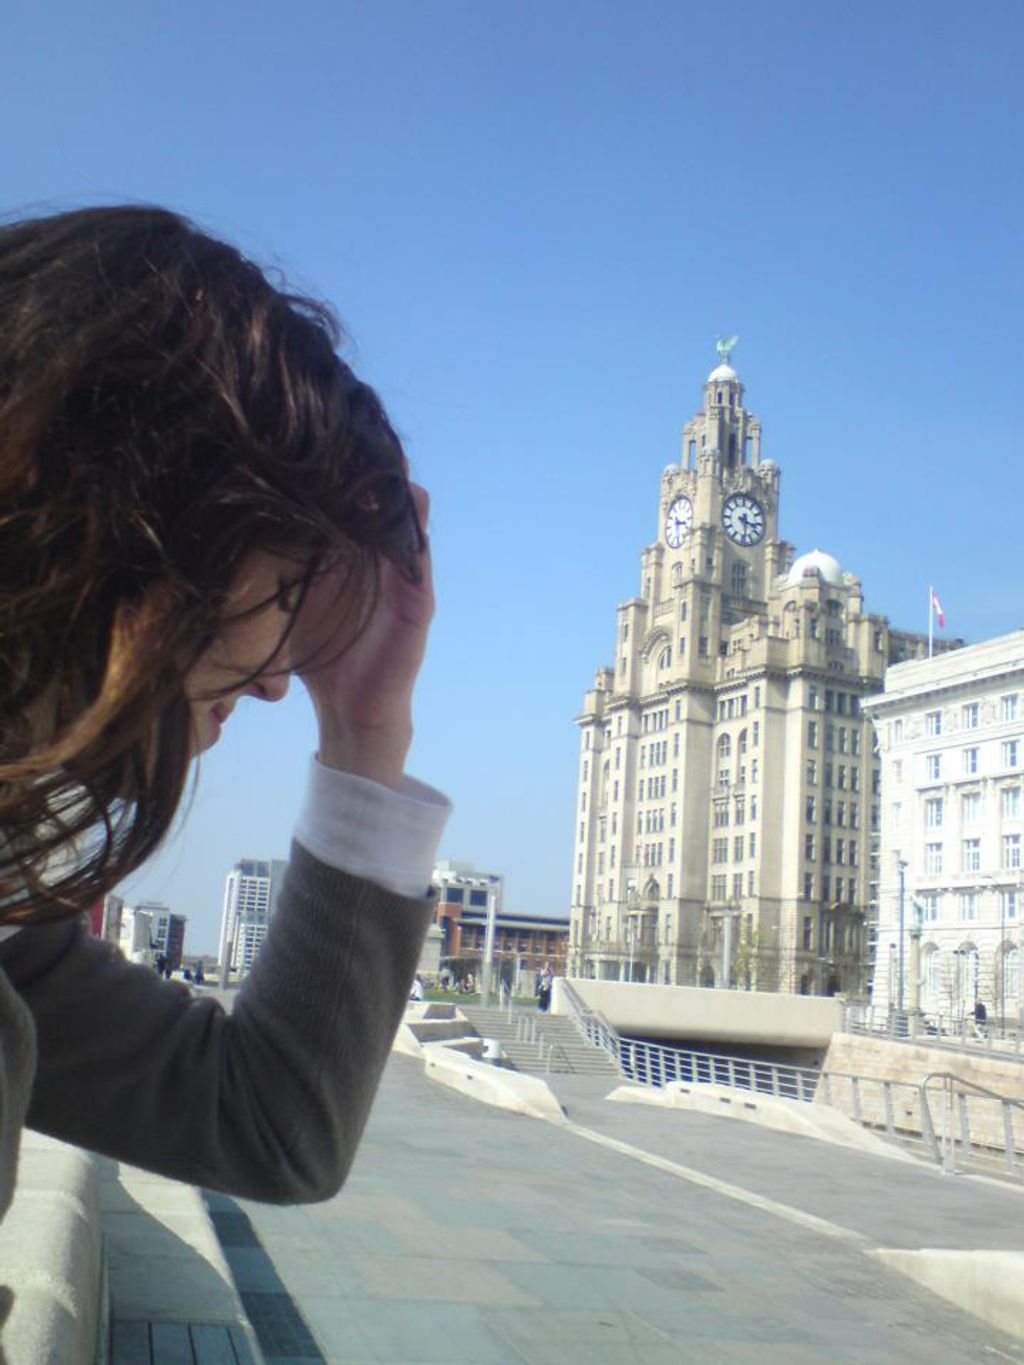 Liverpool, the forgotten city